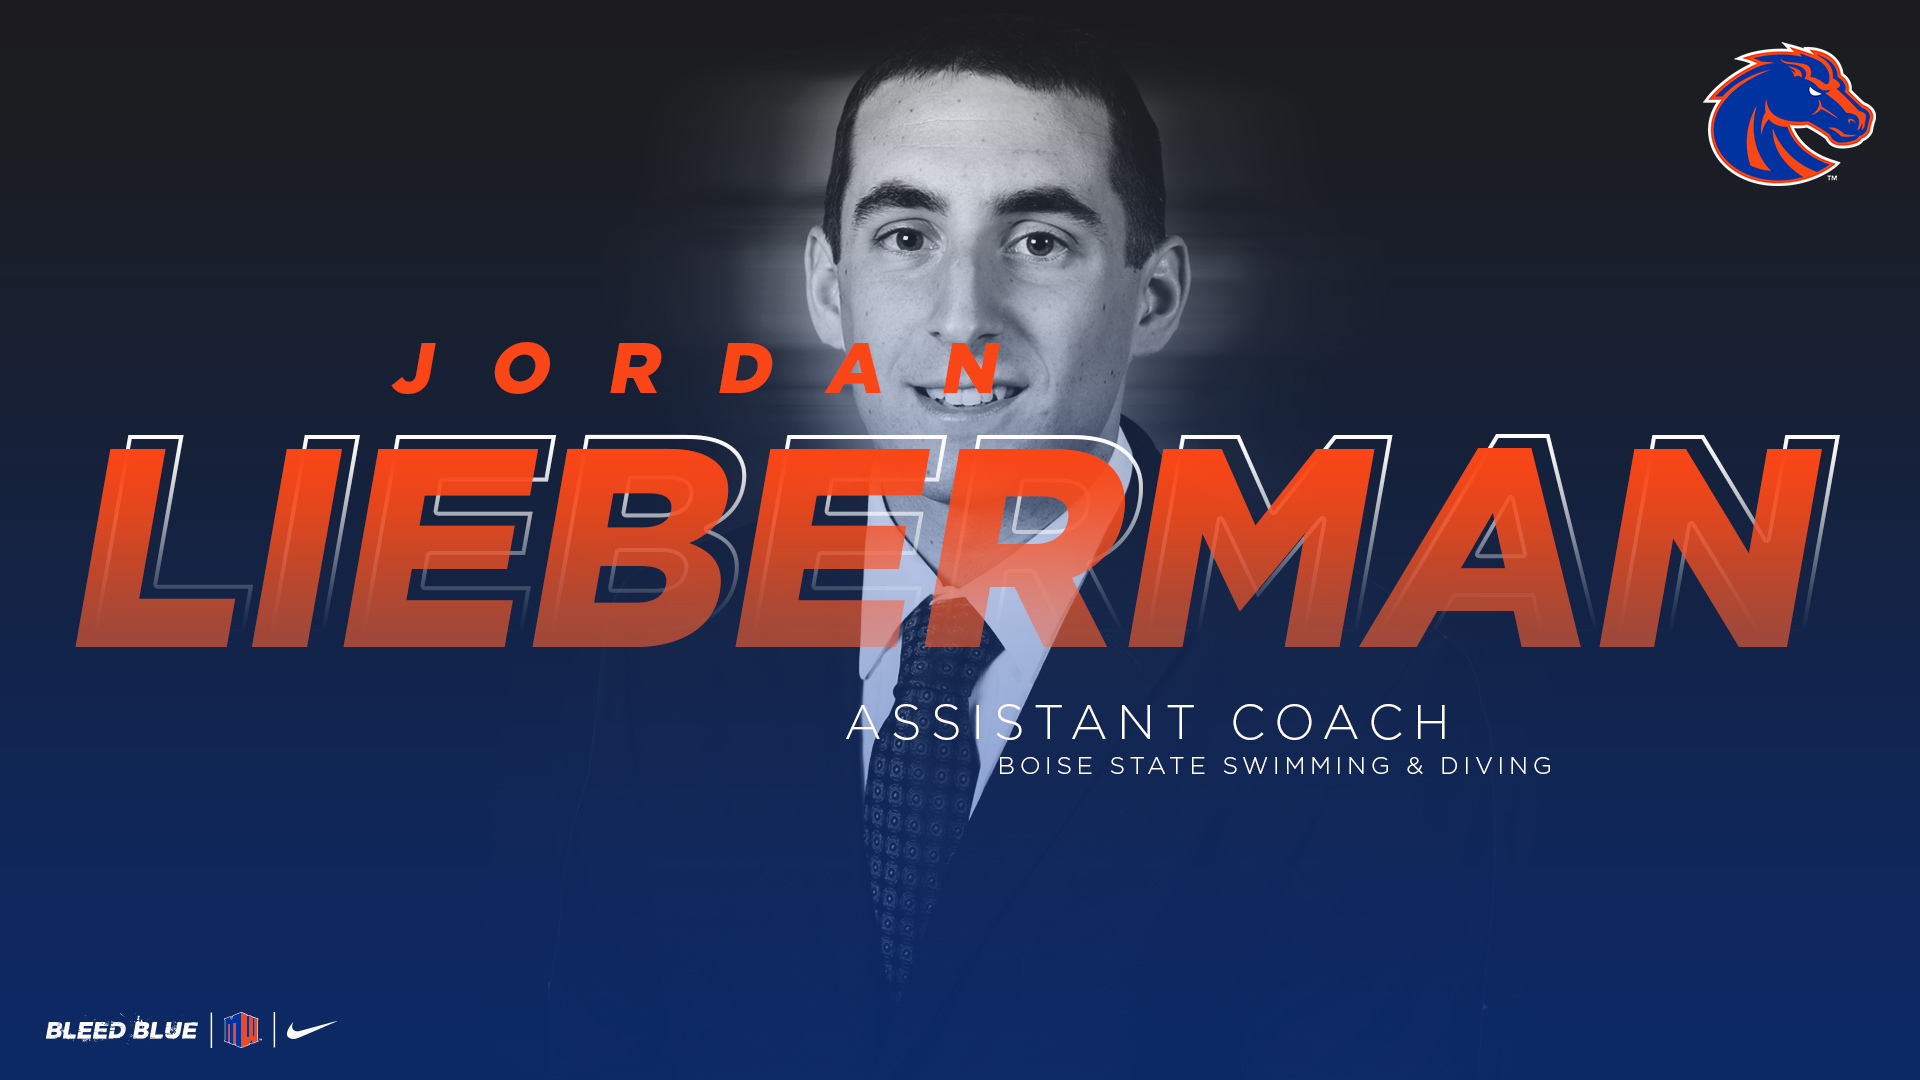 Jordan Lieberman hiring graphic